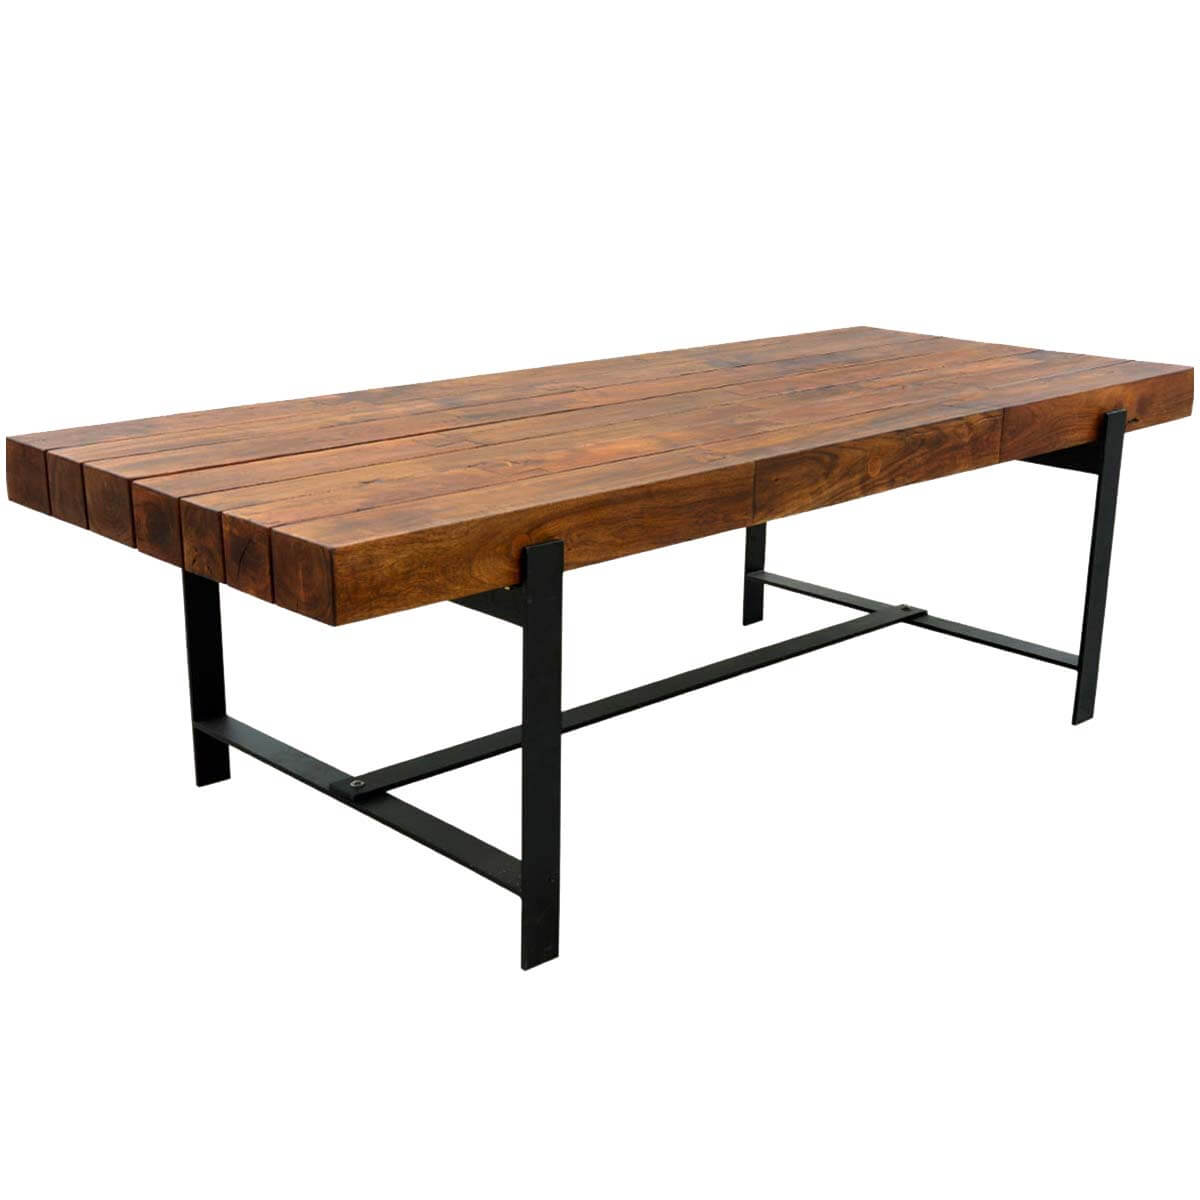 Industrial Iron amp Acacia Wood 94quot Large Rustic Dining Table : 5131 from sierralivingconcepts.com size 1200 x 1200 jpeg 73kB